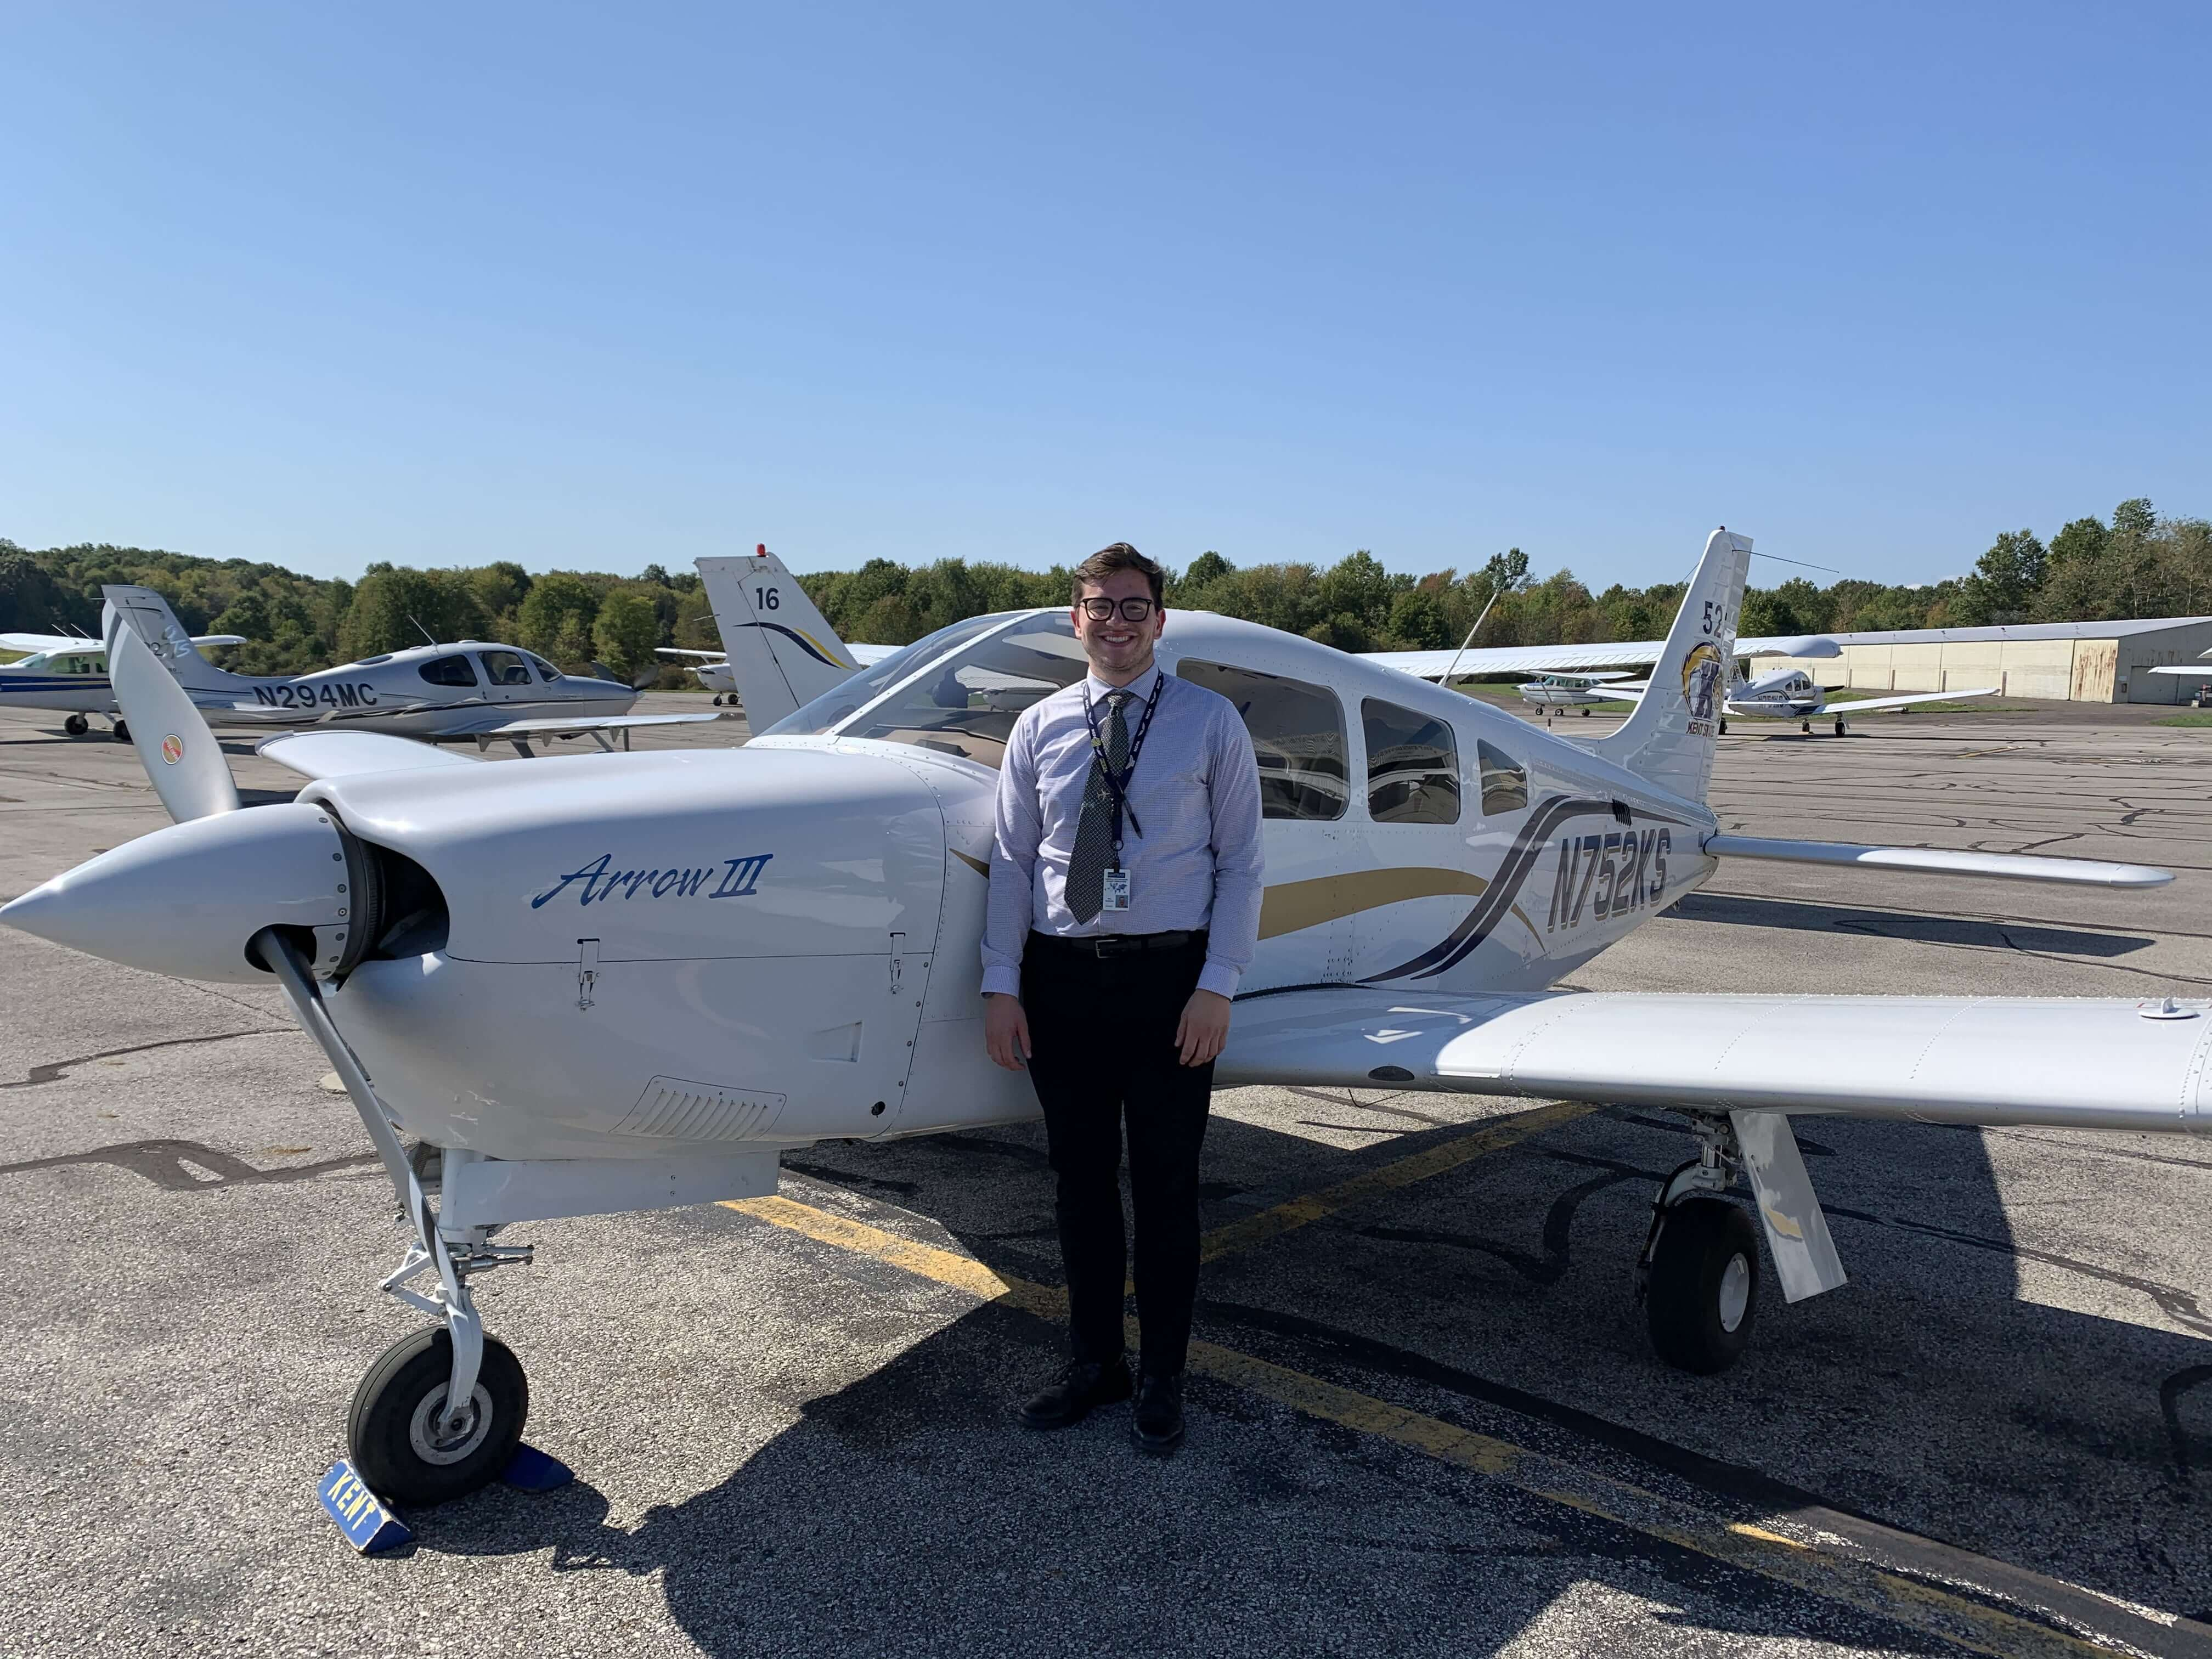 student in front of small plane